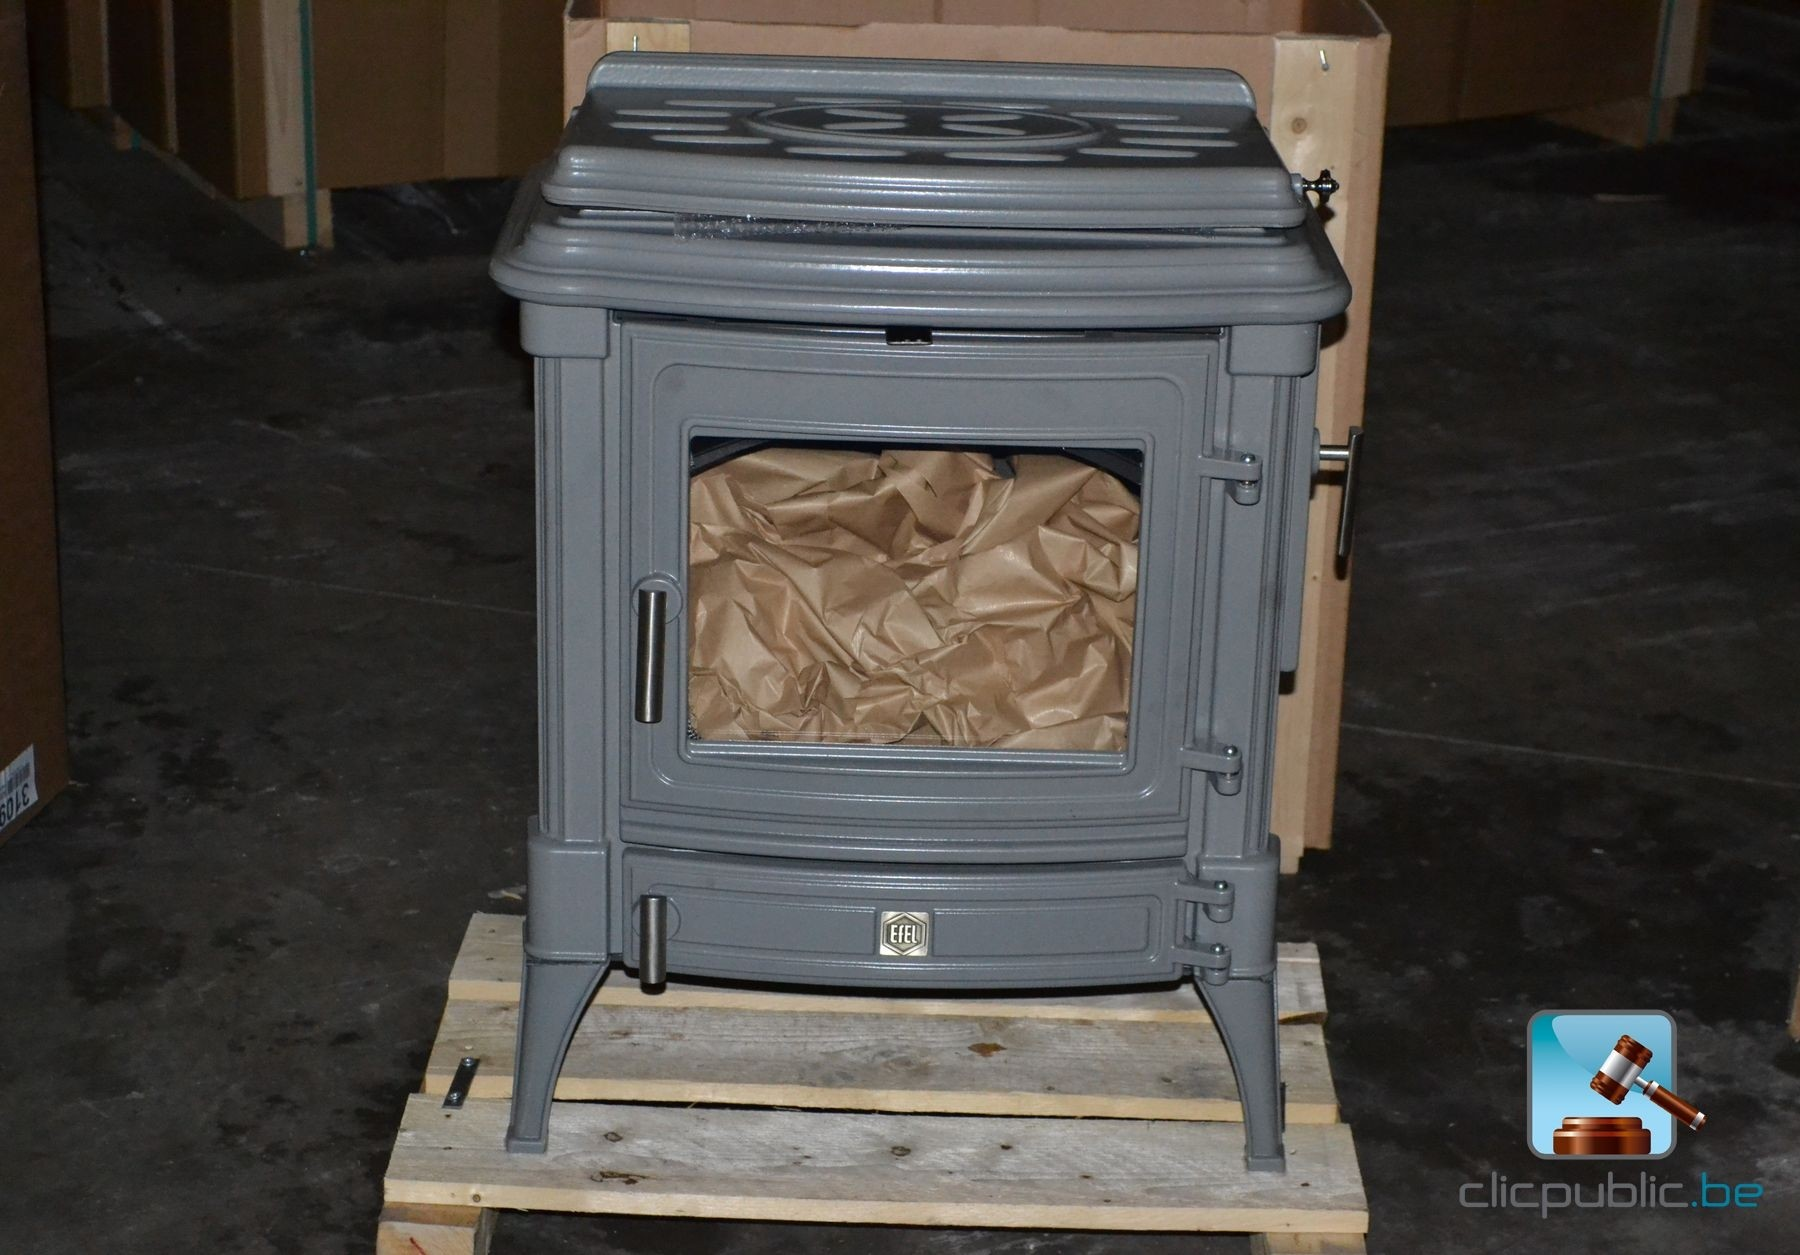 Wood stove EFEL STANFORD 9+ B Grey to sale on clicpublicbe